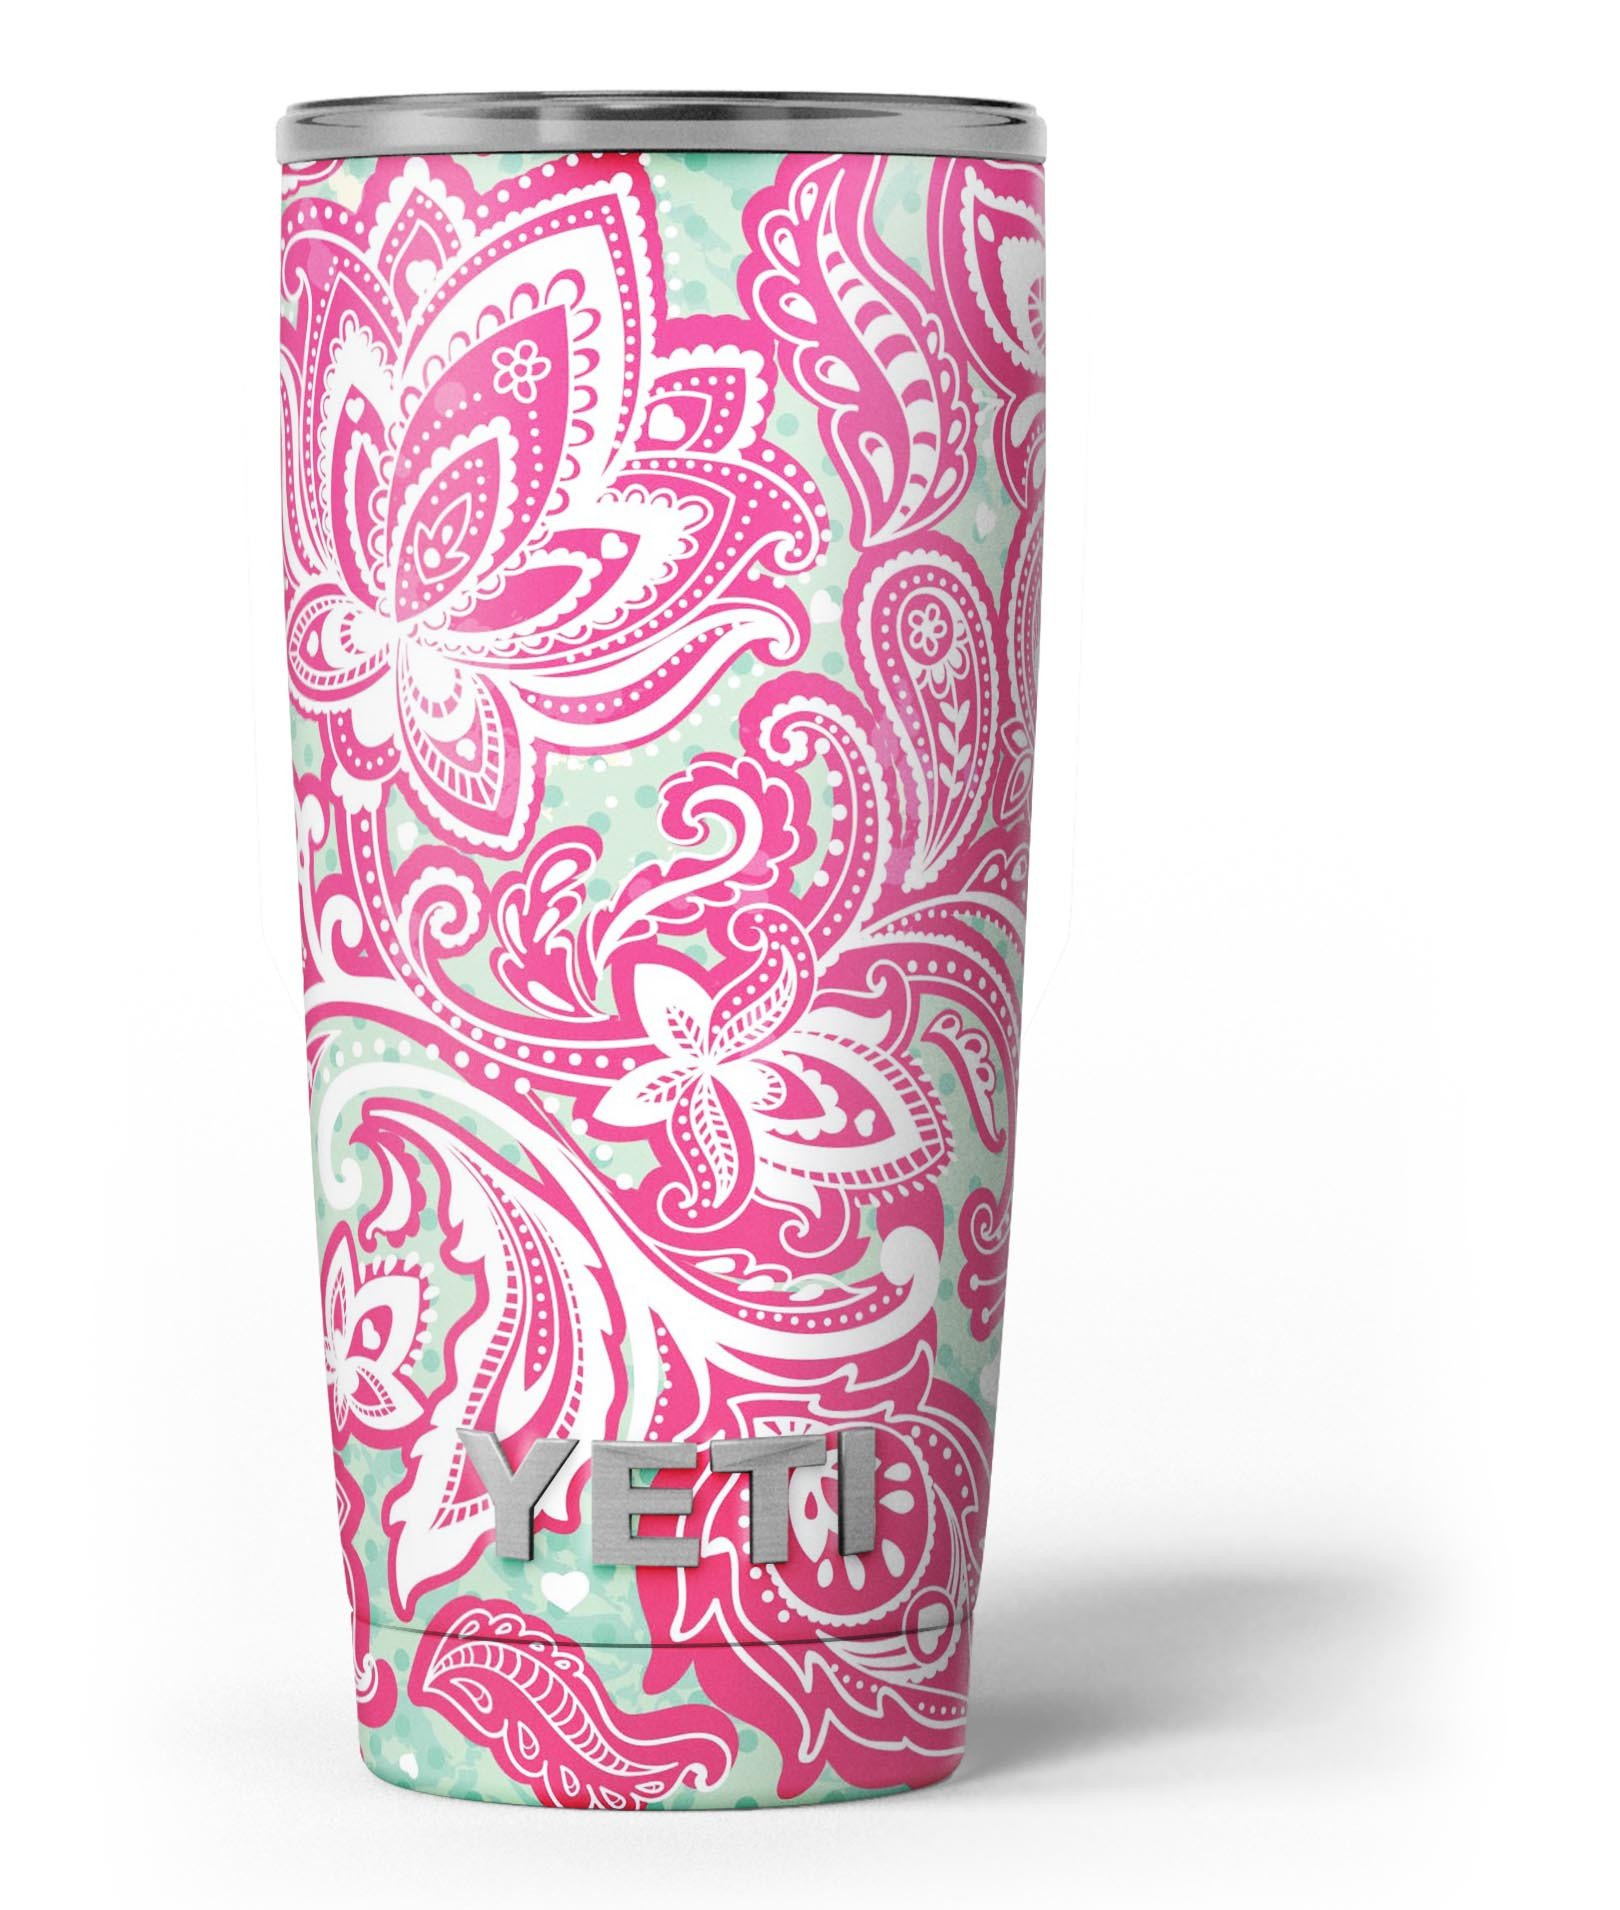 Image of Red and Green Floral Ethnic - Skin Decal Vinyl Wrap Kit compatible with the Yeti Rambler Cooler Tumbler Cups